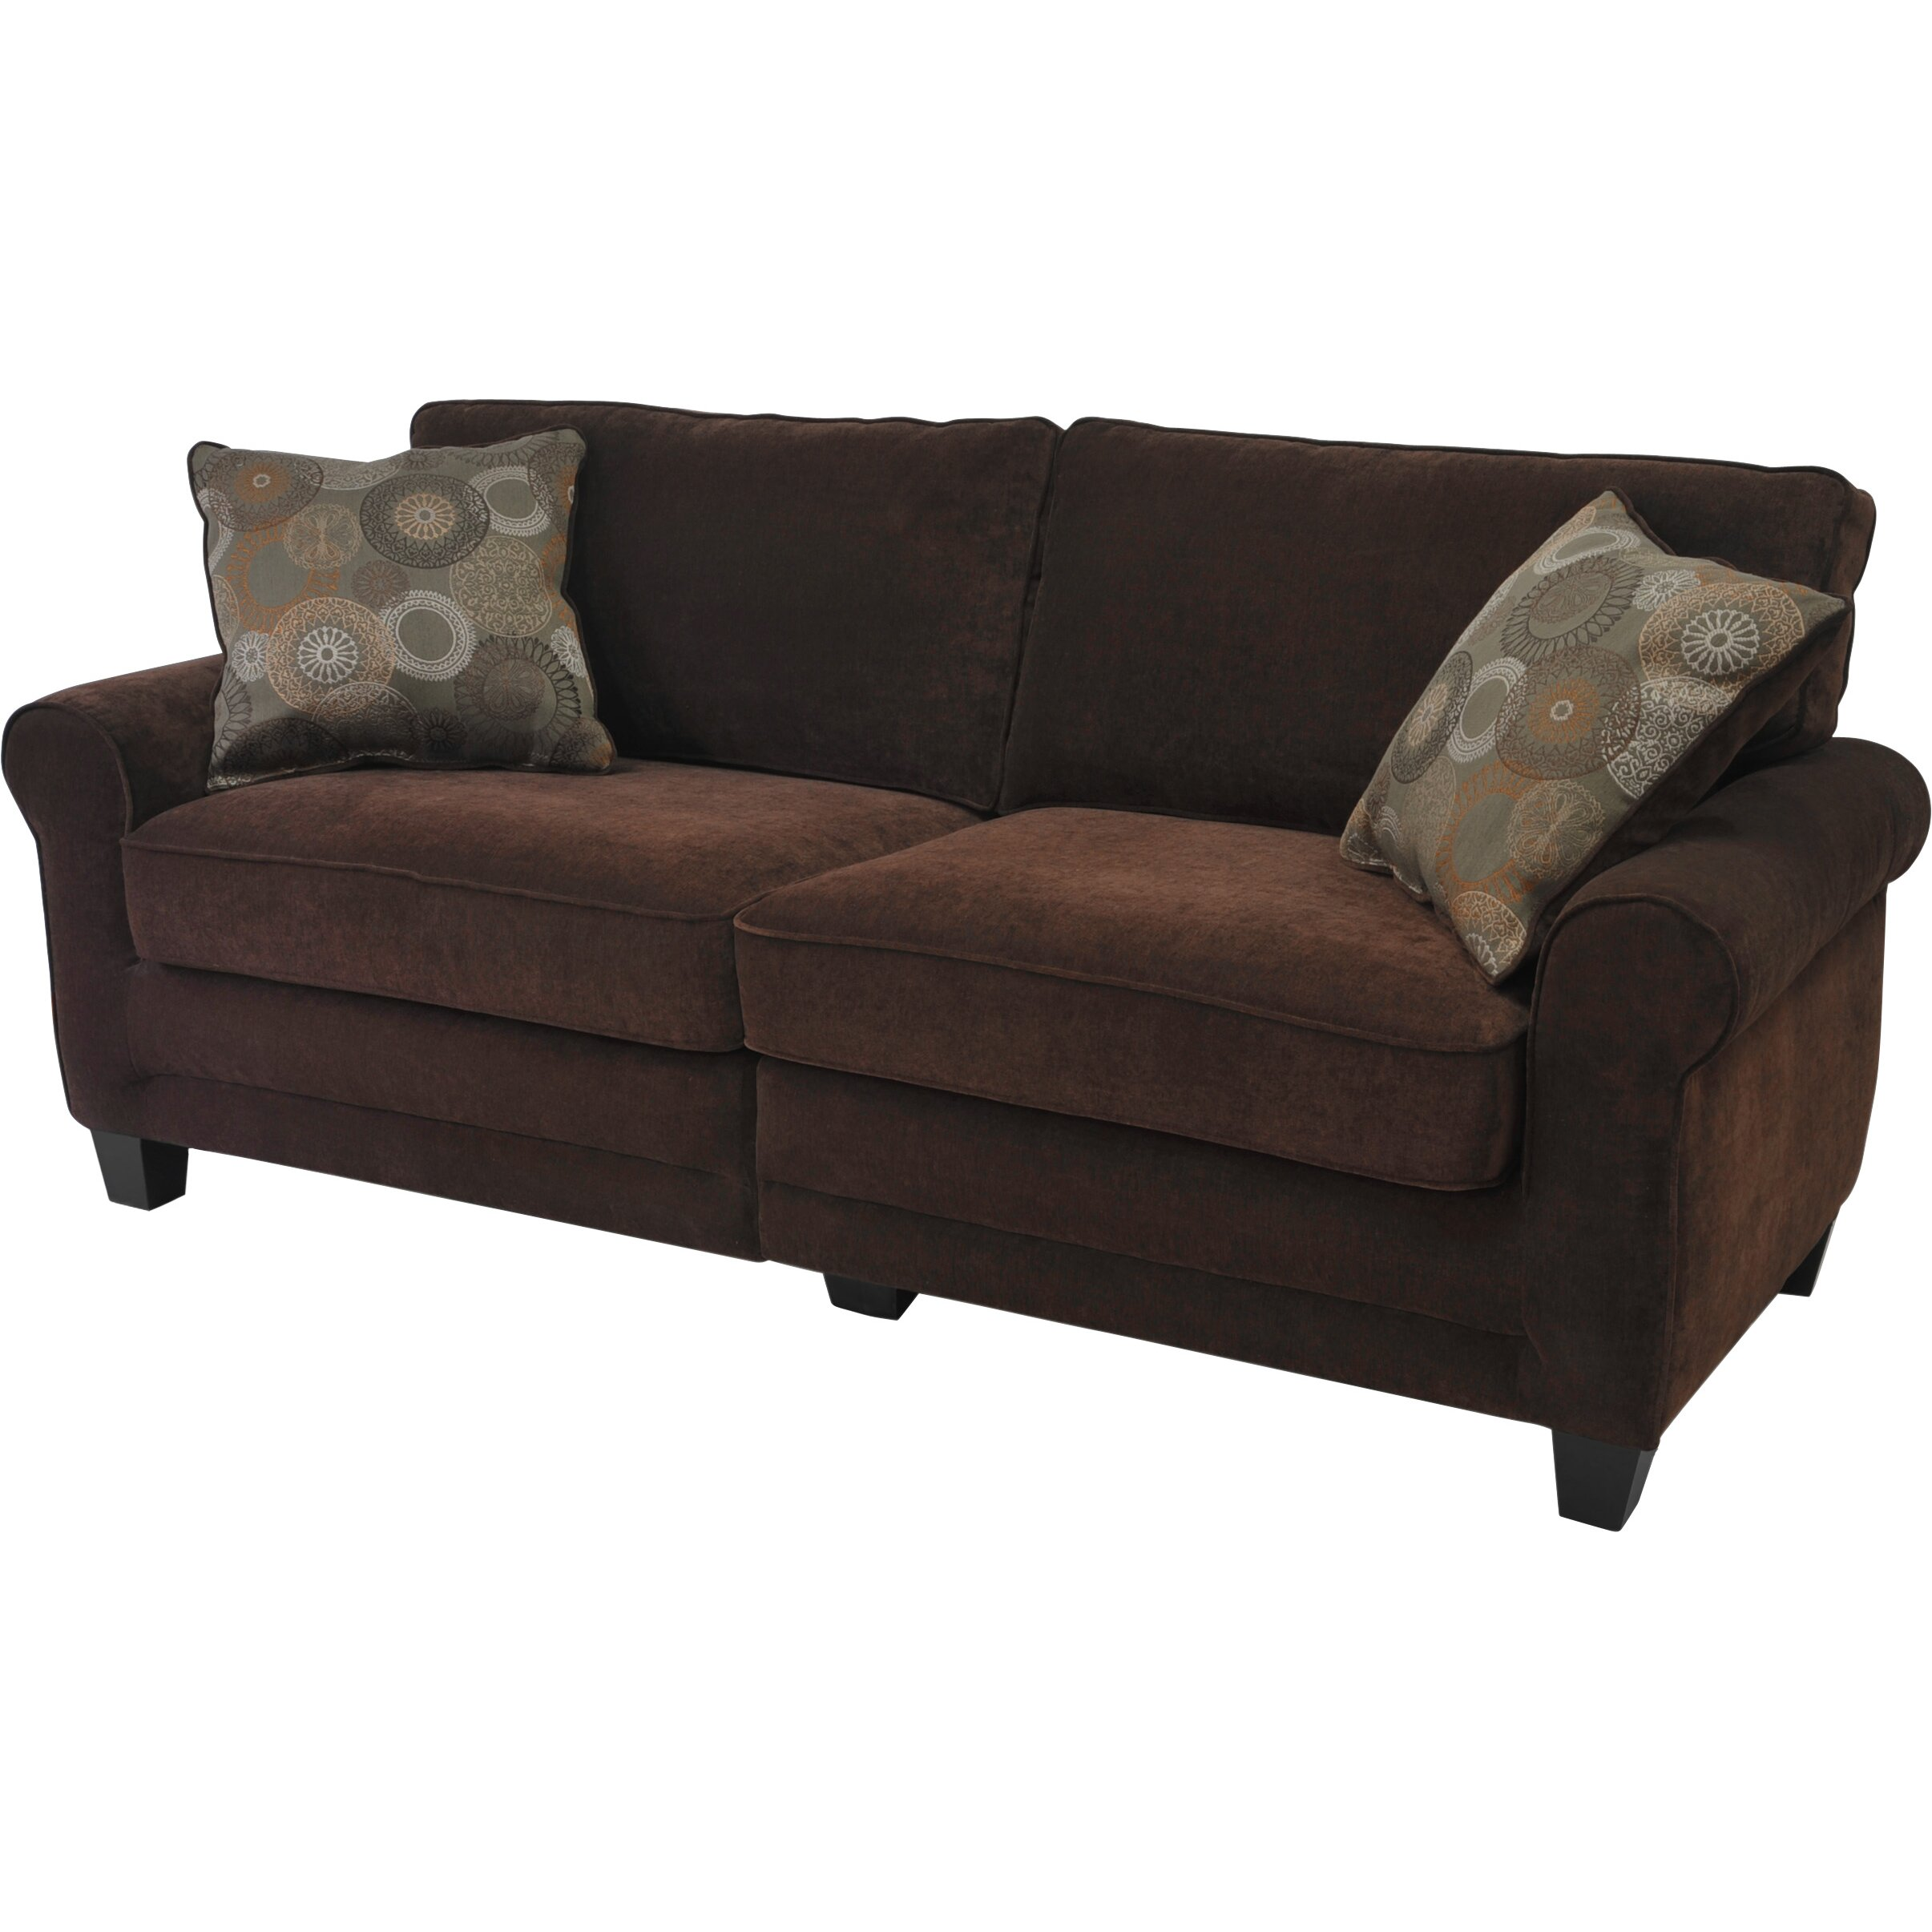 Serta At Home Serta Rta Copenhagen 78 Sofa Reviews Wayfair